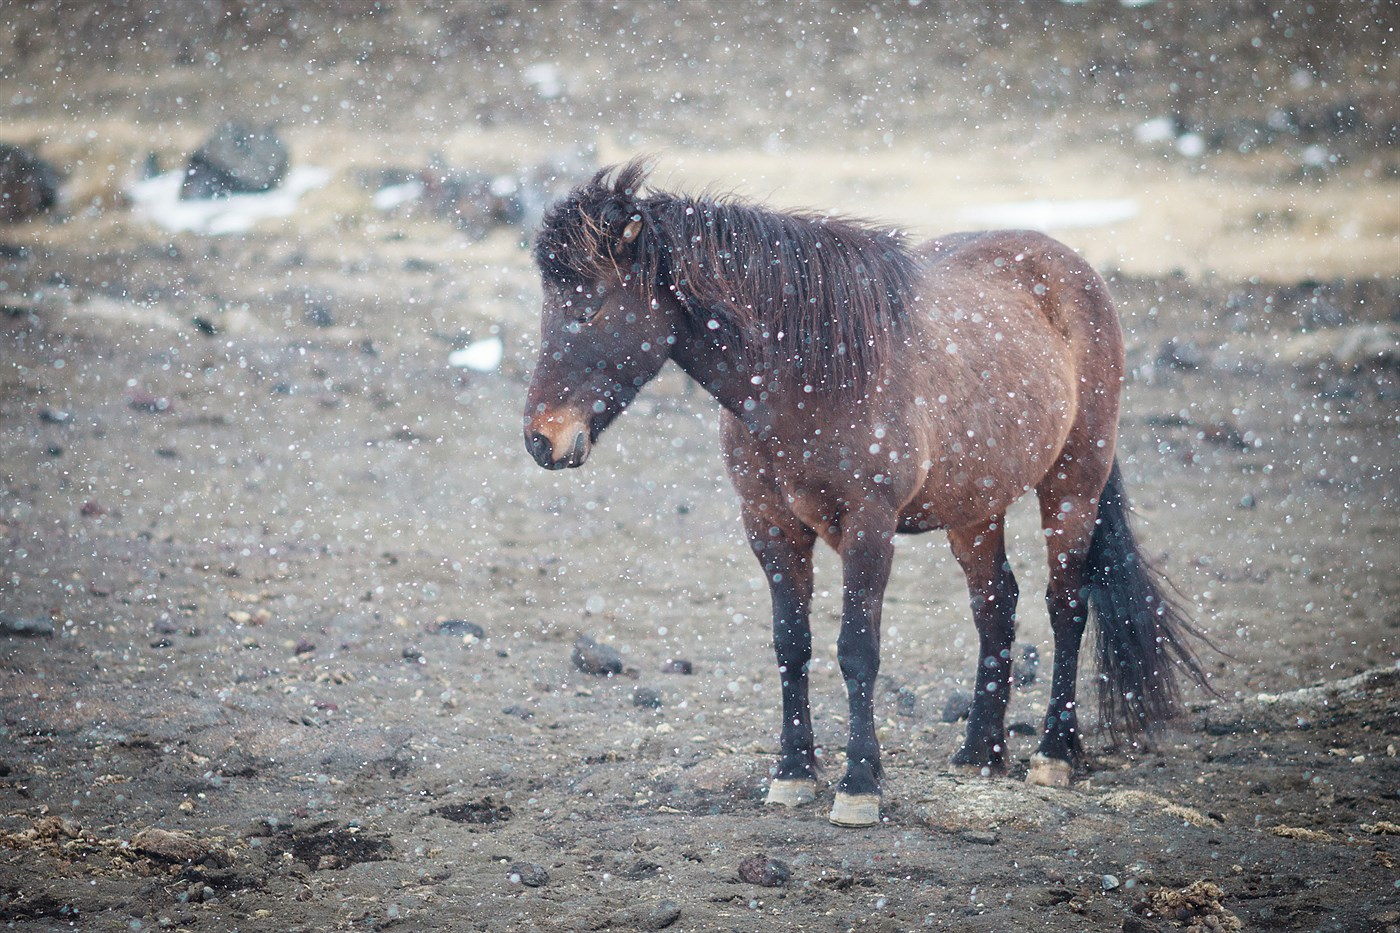 Horse near Mývatn, photo